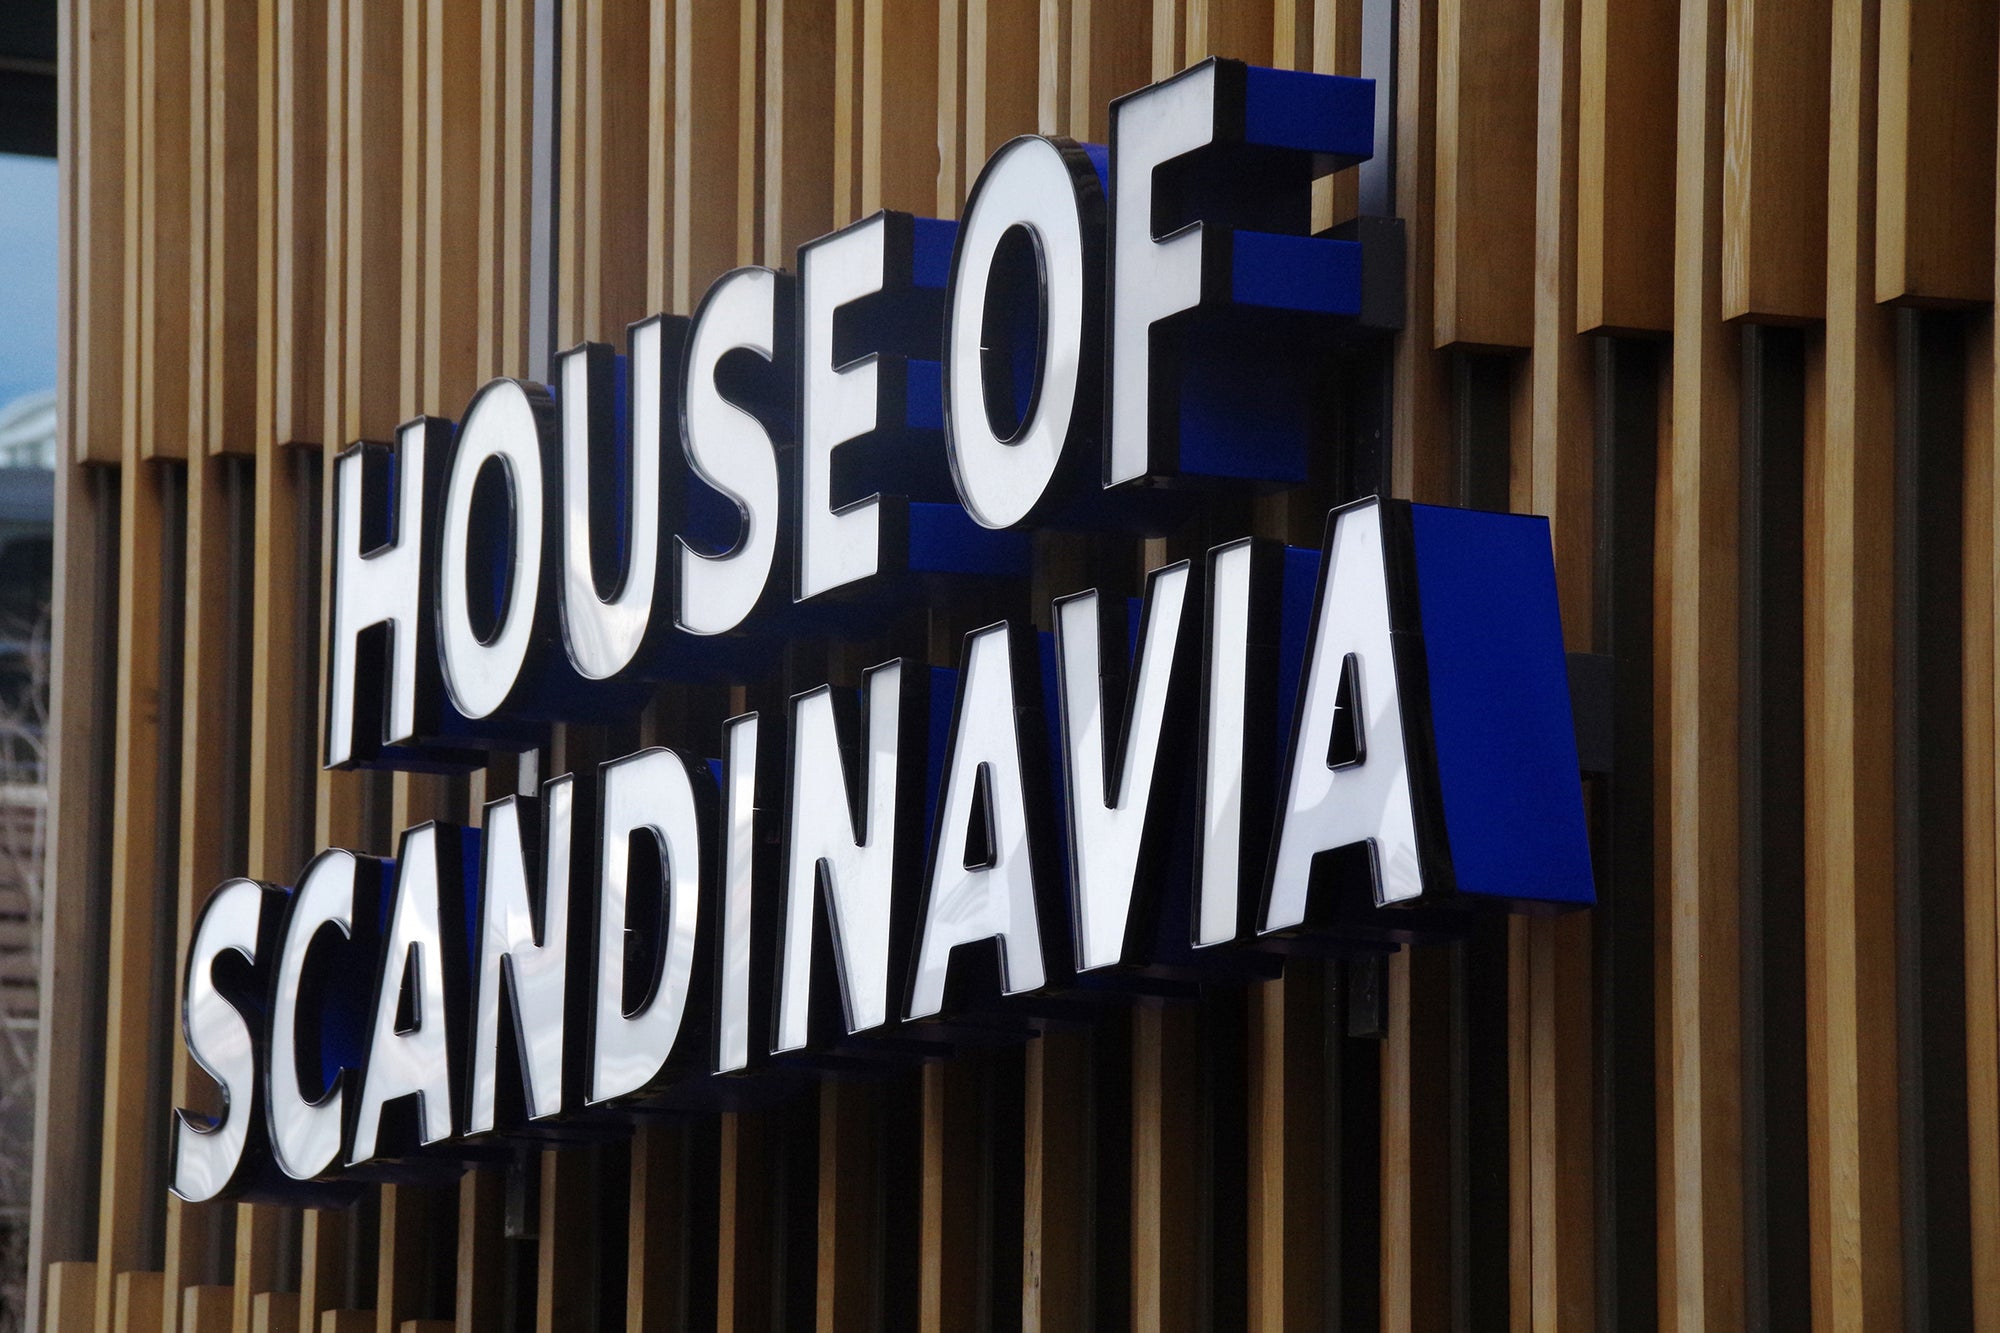 House Of Scandinavia